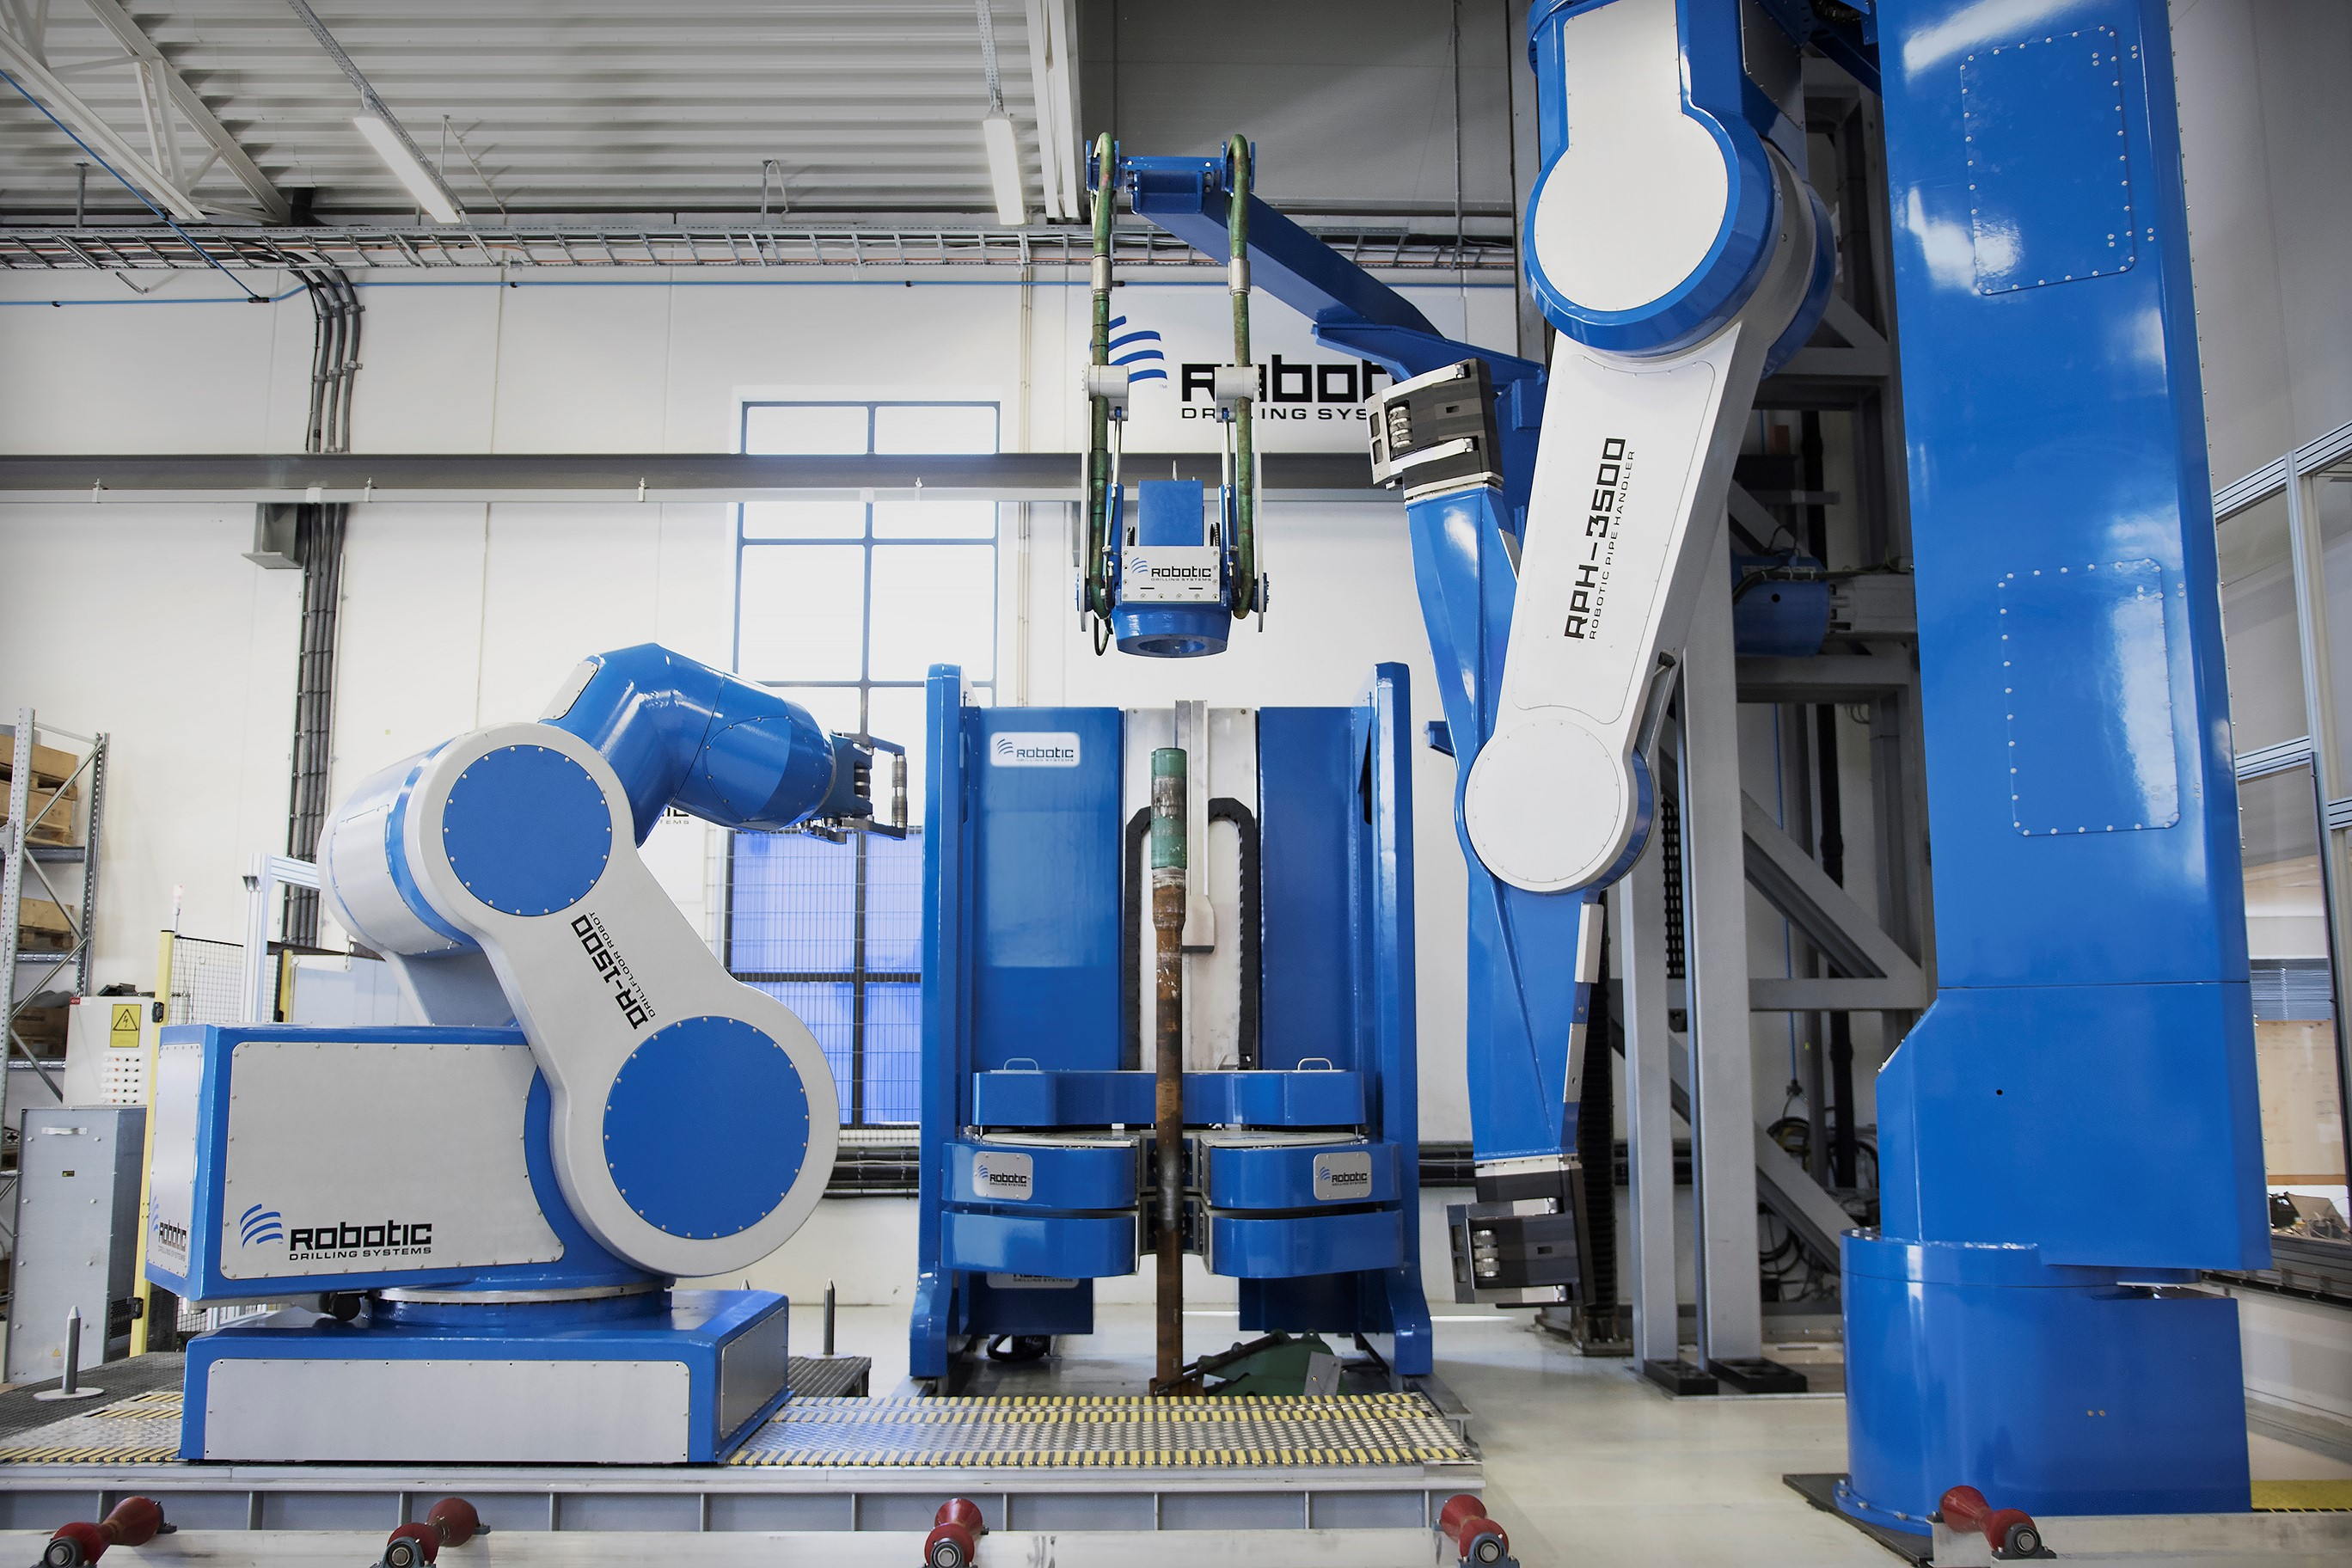 Foto: Robotic Drilling Systems